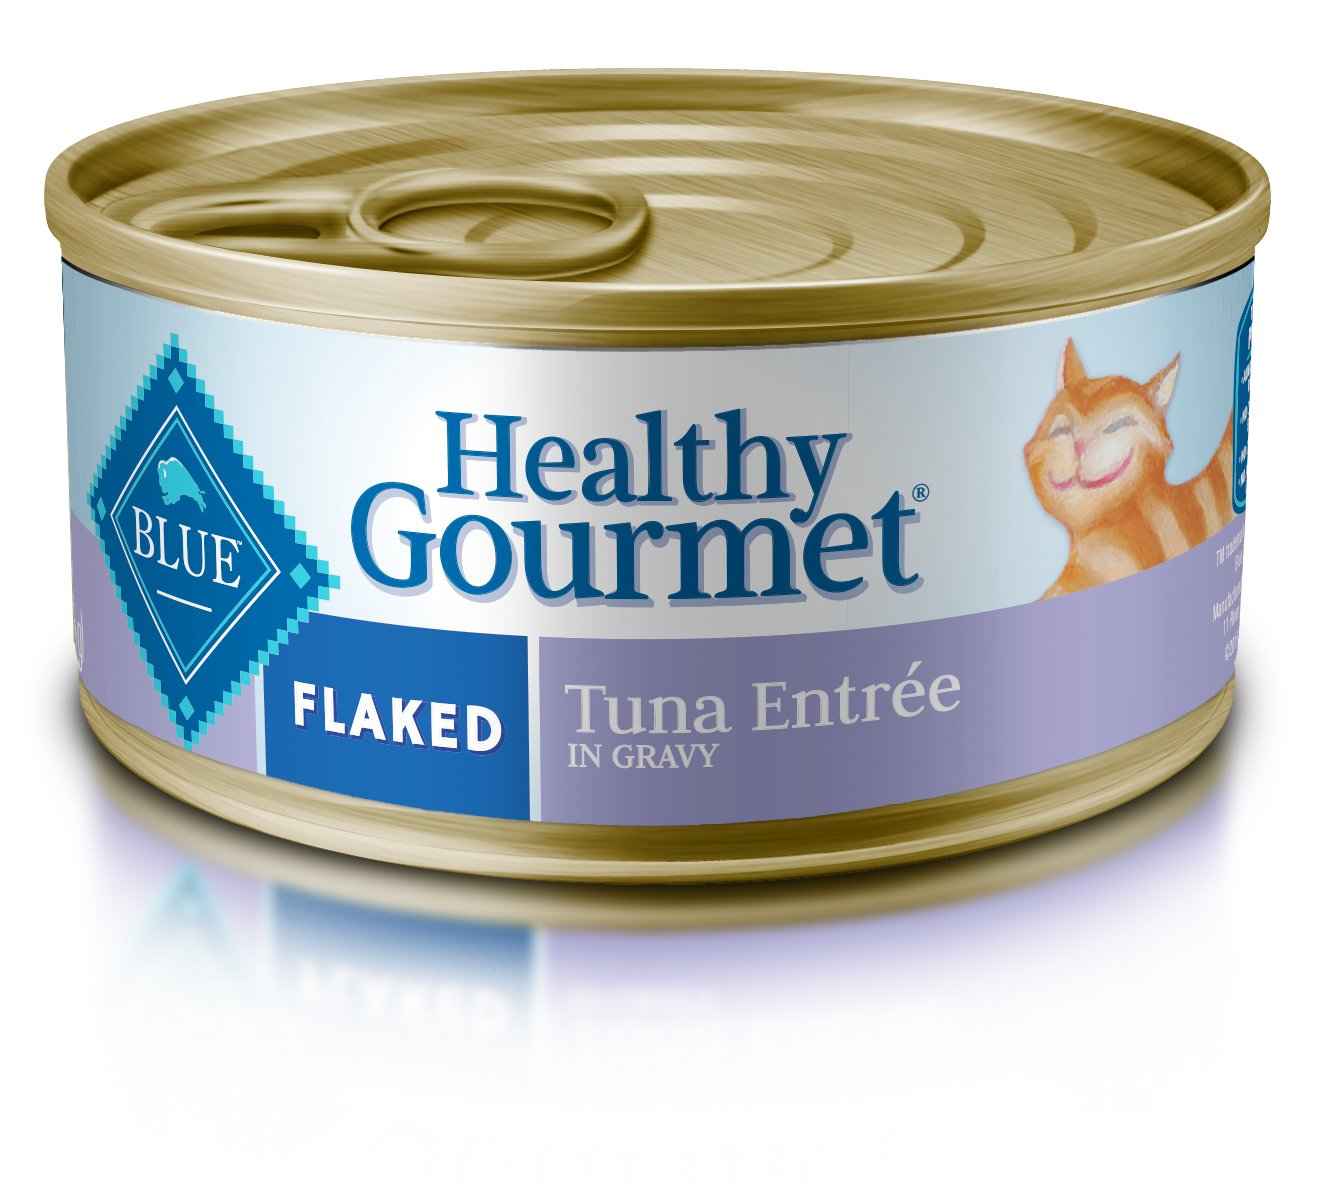 Blue Buffalo Healthy Gourmet Natural Adult Flaked Wet Cat Food, Tuna 5.5-oz cans (Pack of 24) by Blue Buffalo